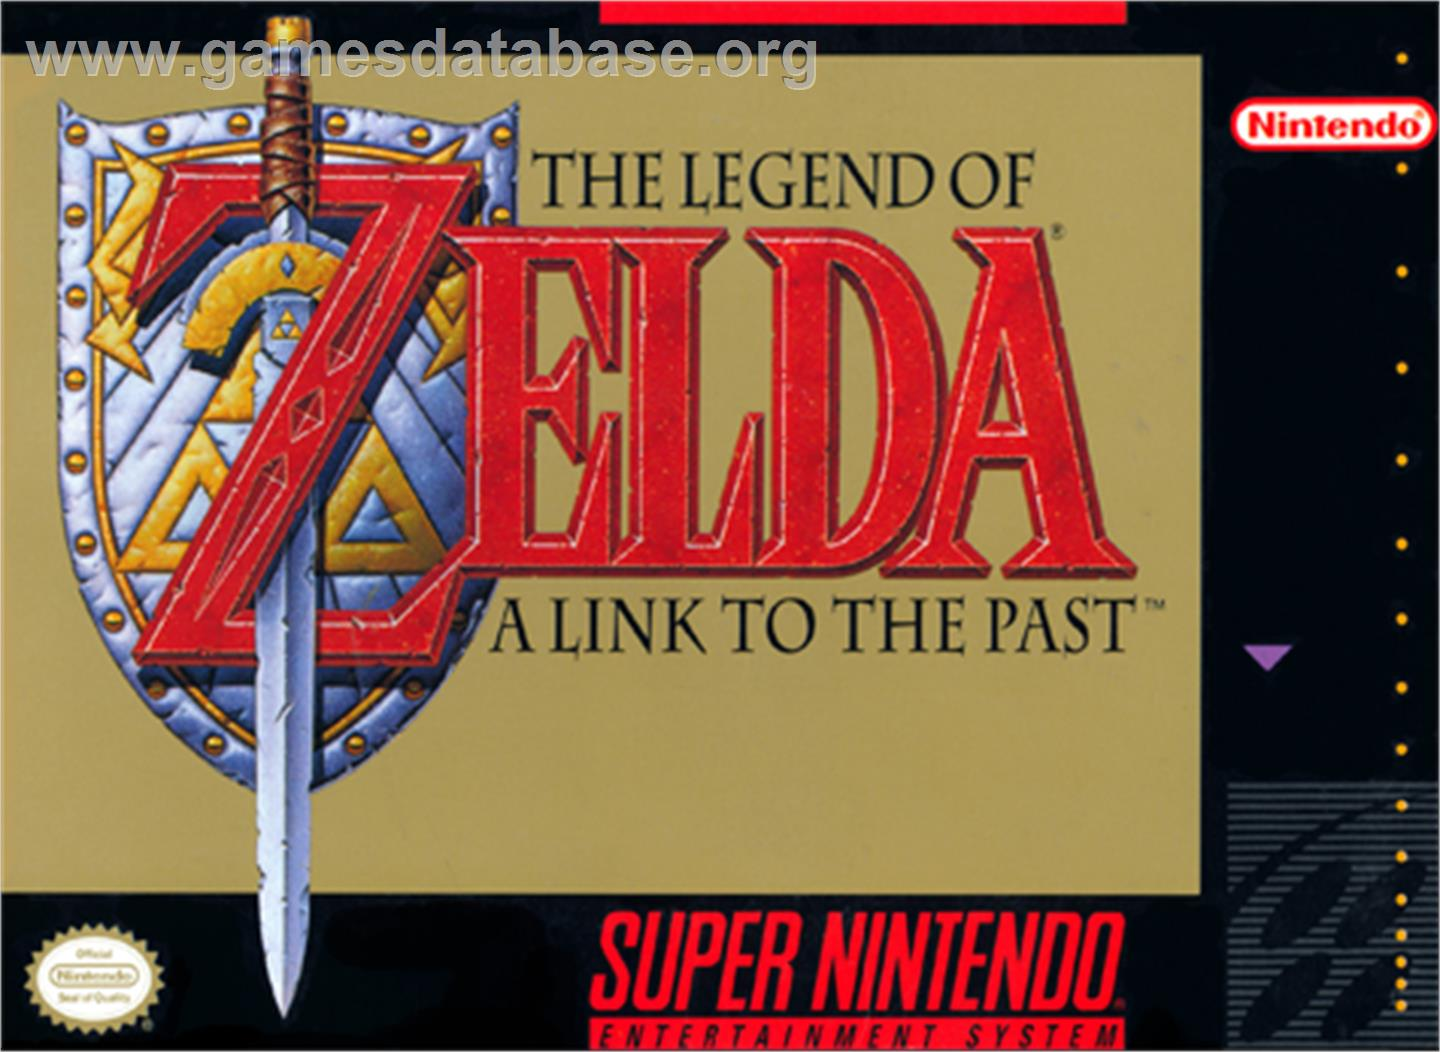 The Legend of Zelda: A Link to the Past - Nintendo SNES - Artwork - Box